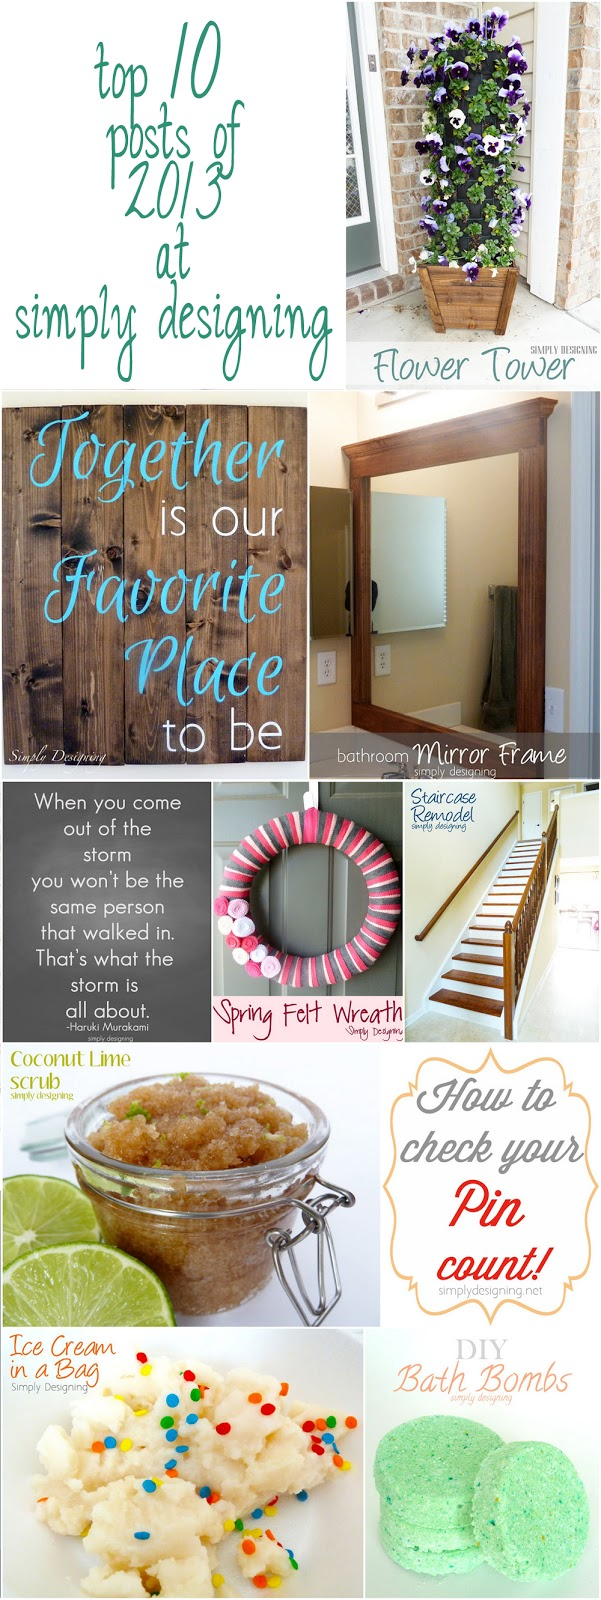 top 10 posts of 2013 from Simply Designing | #DIY #crafts